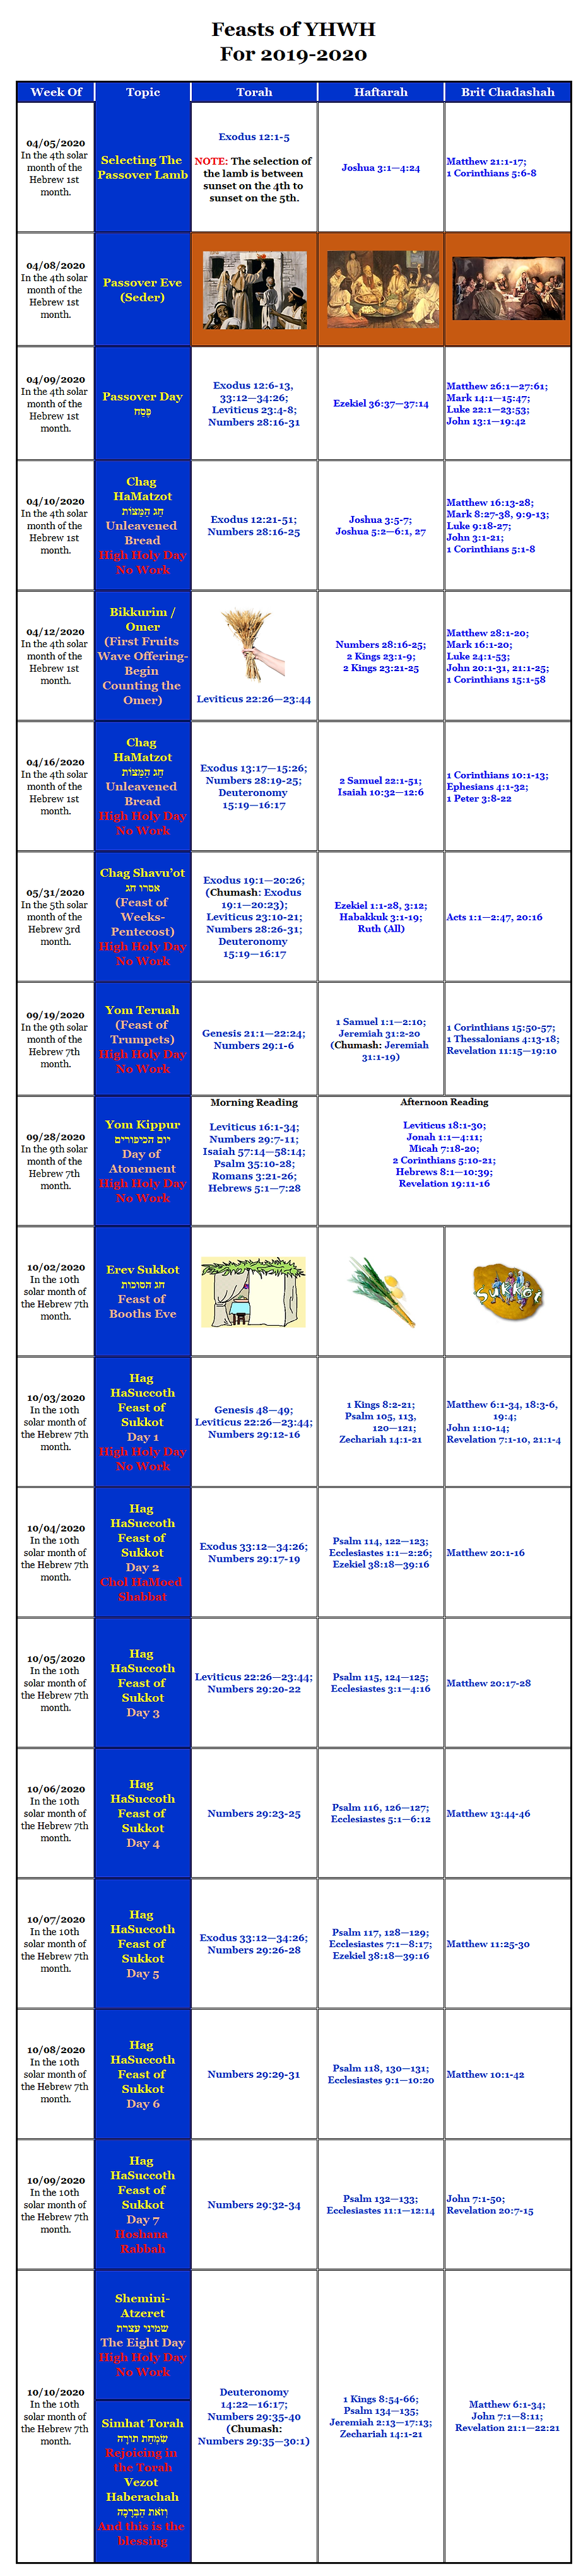 Feasts of YHWH for 2019-2020.png